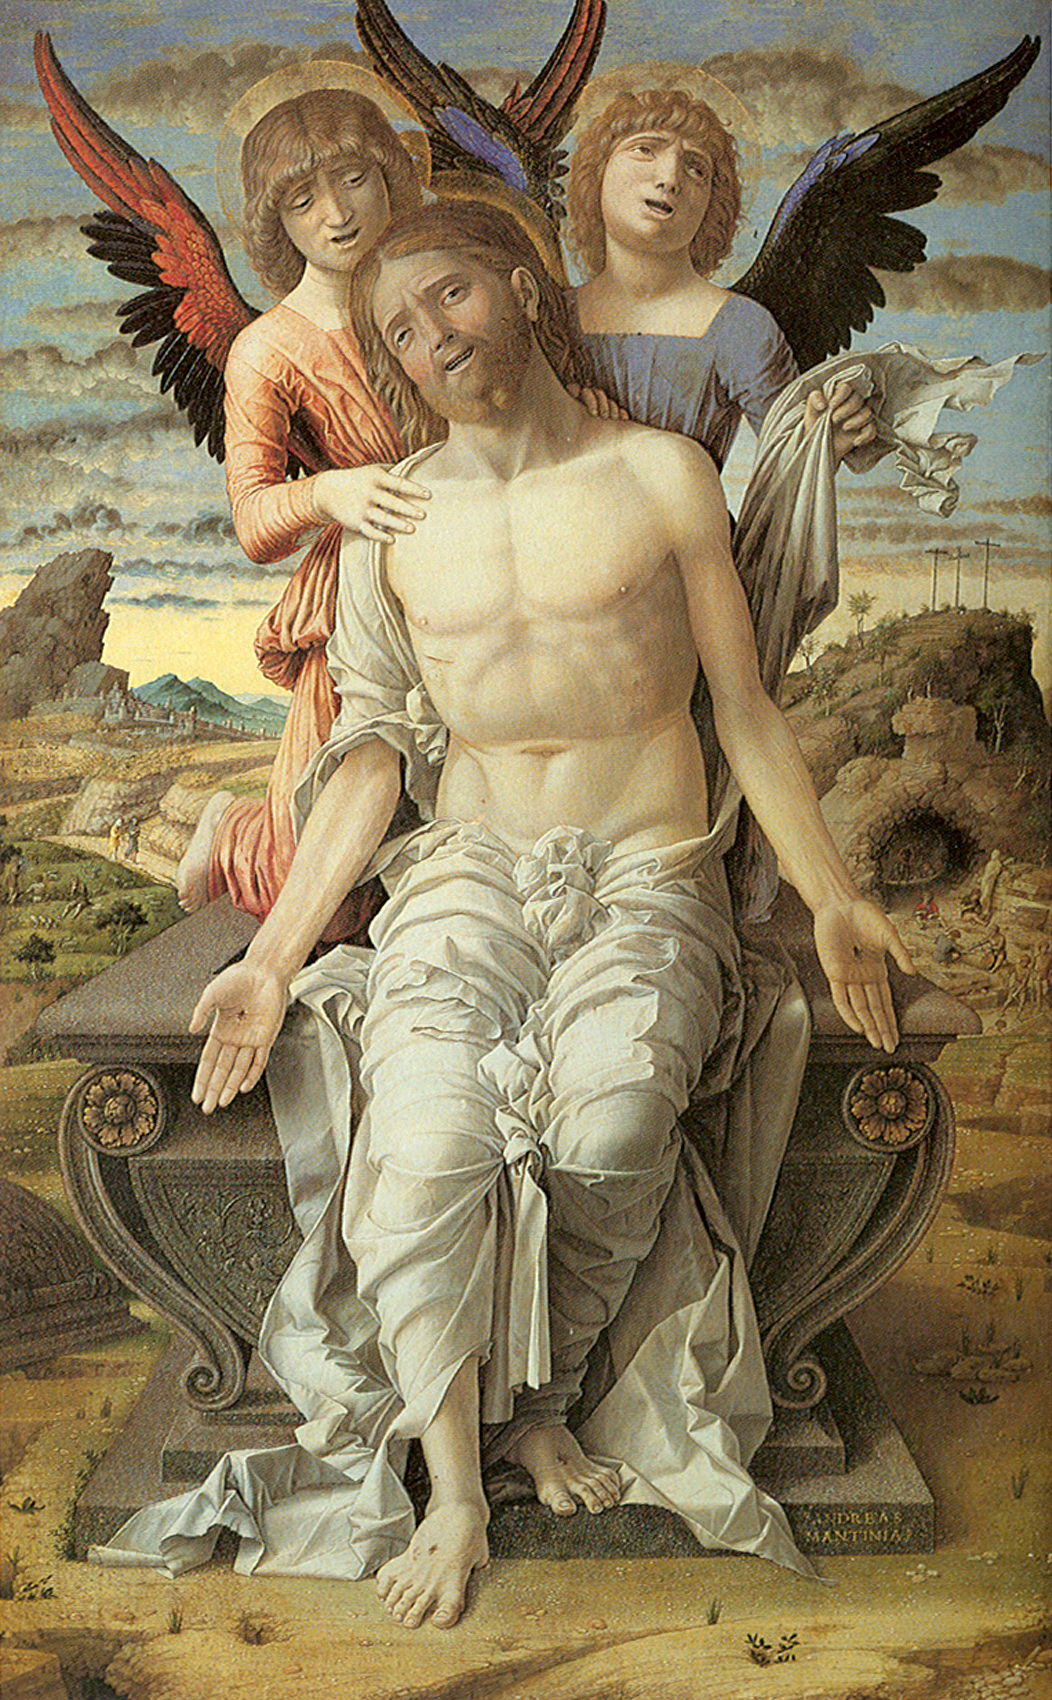 http://upload.wikimedia.org/wikipedia/commons/8/89/Andrea_Mantegna_035.jpg